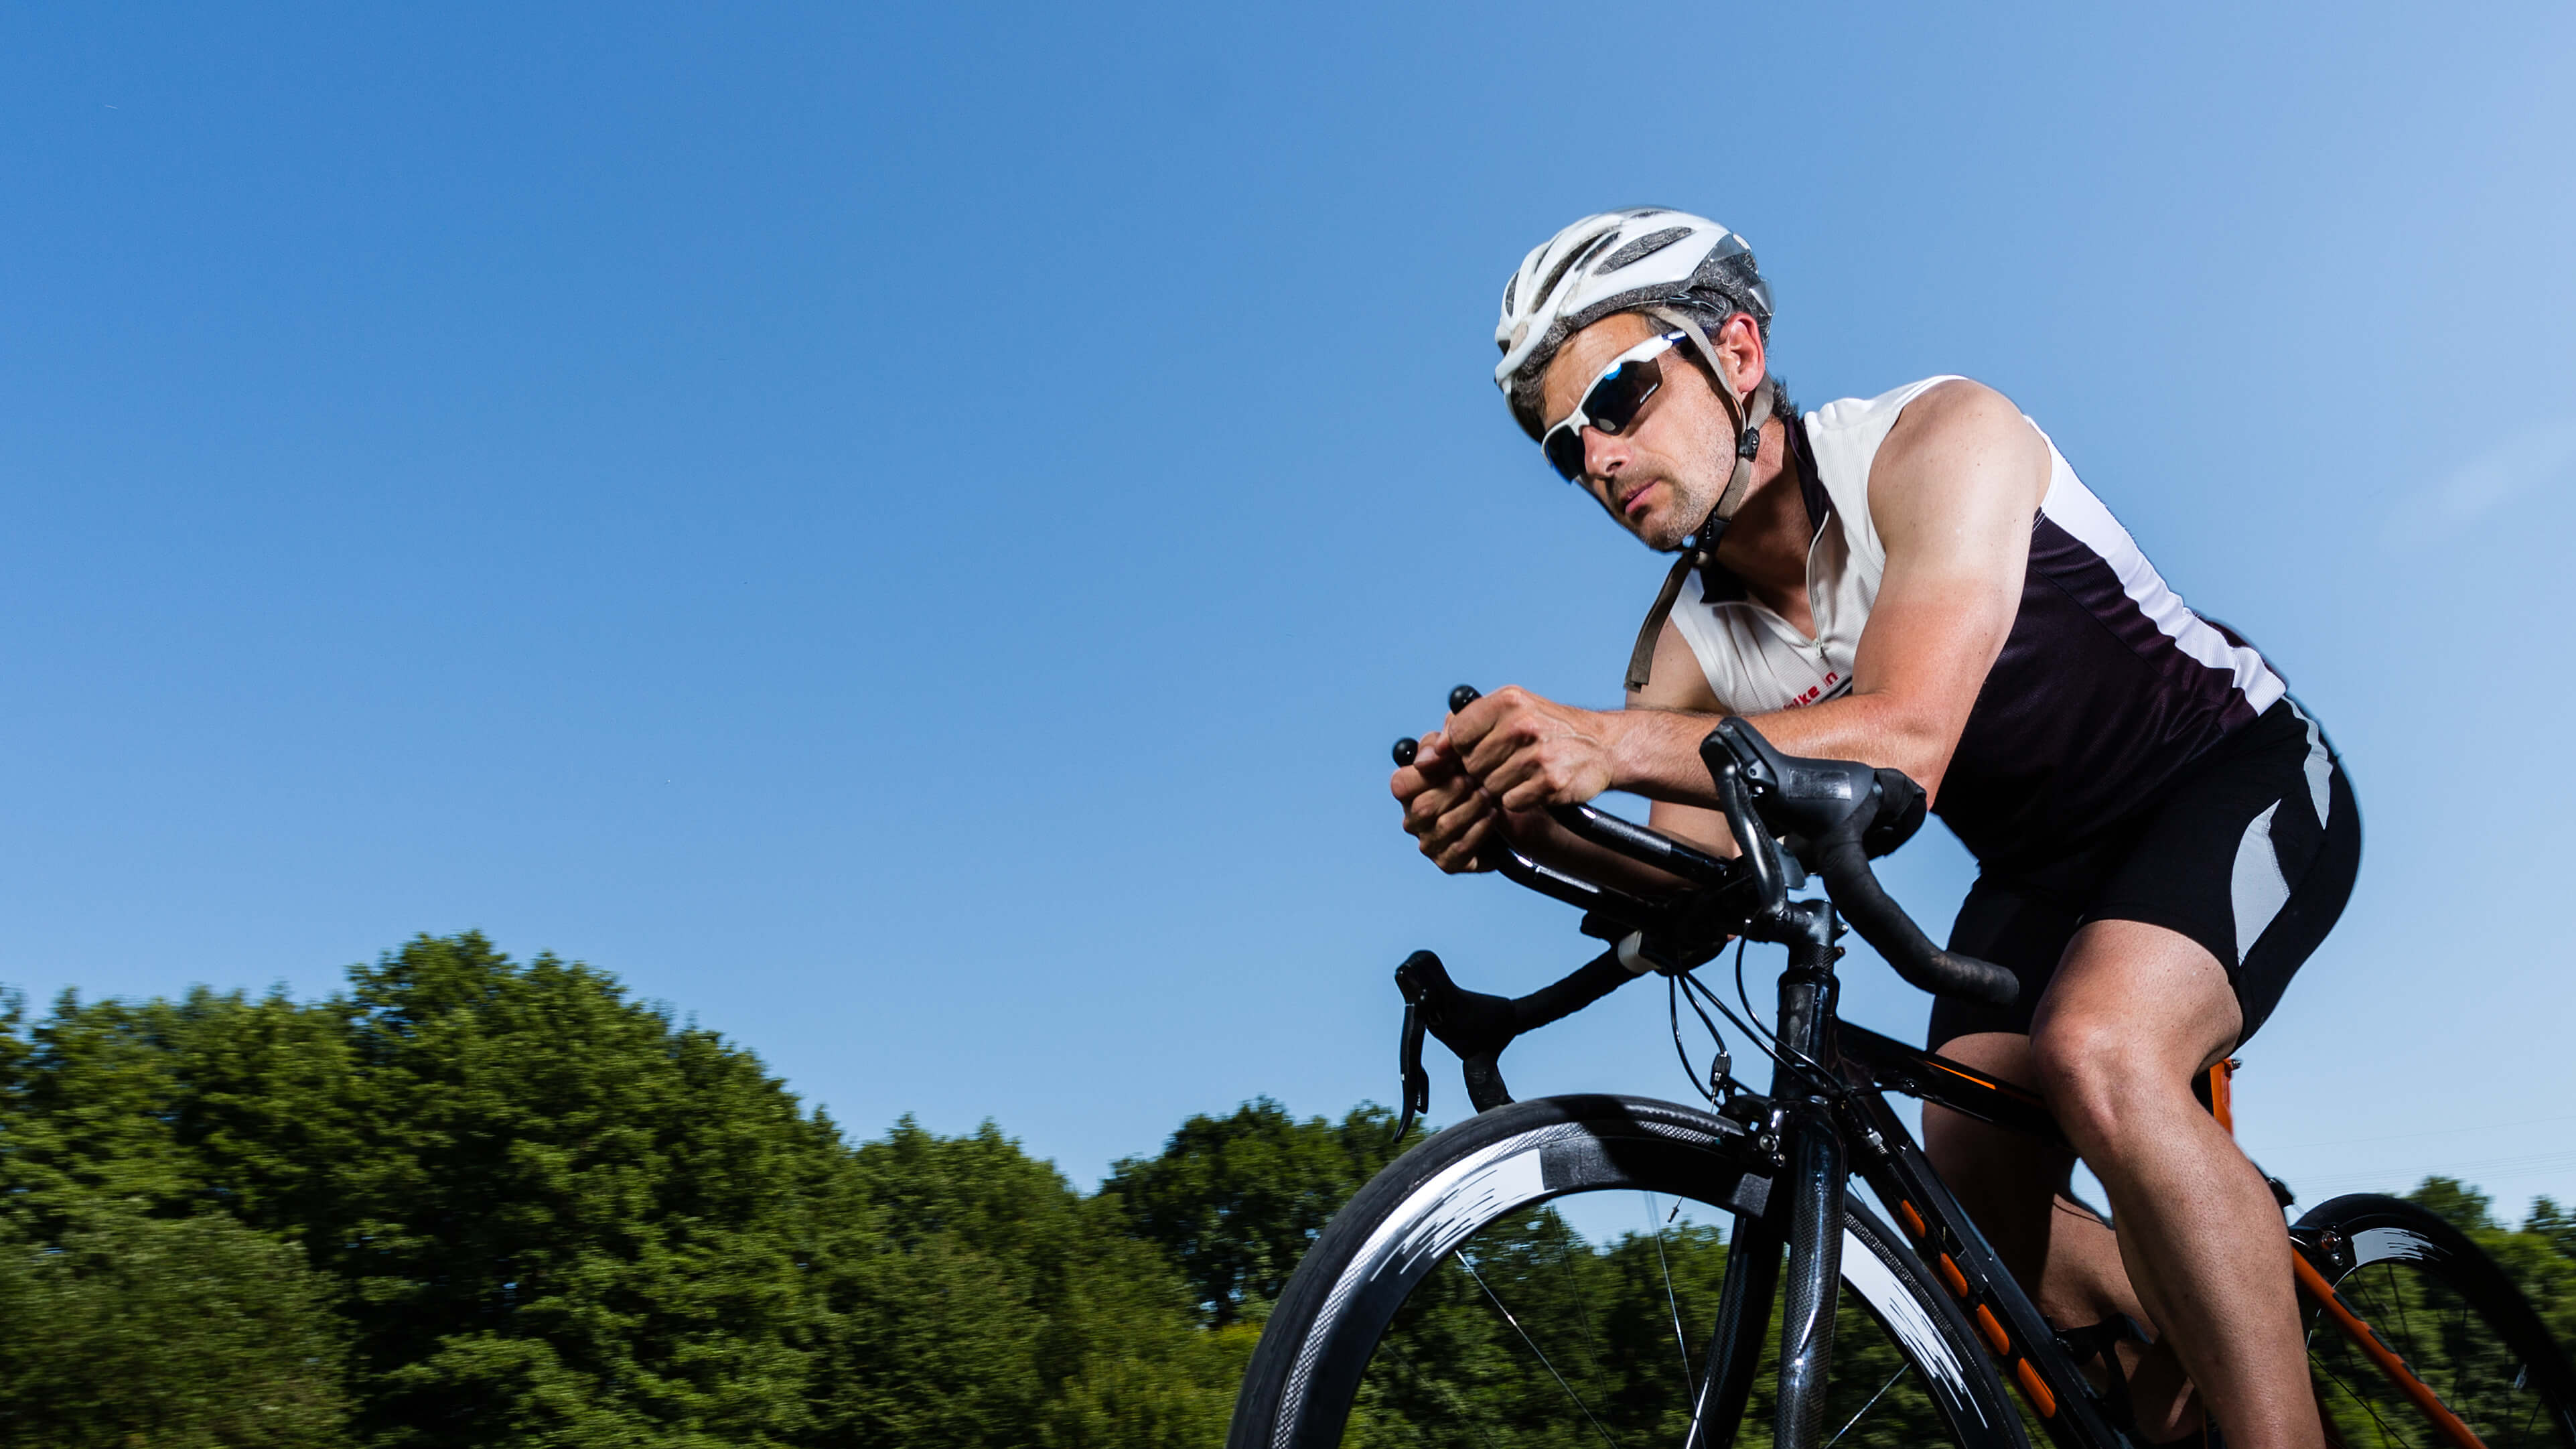 Cycling Training Tips for Clients - Protectivity